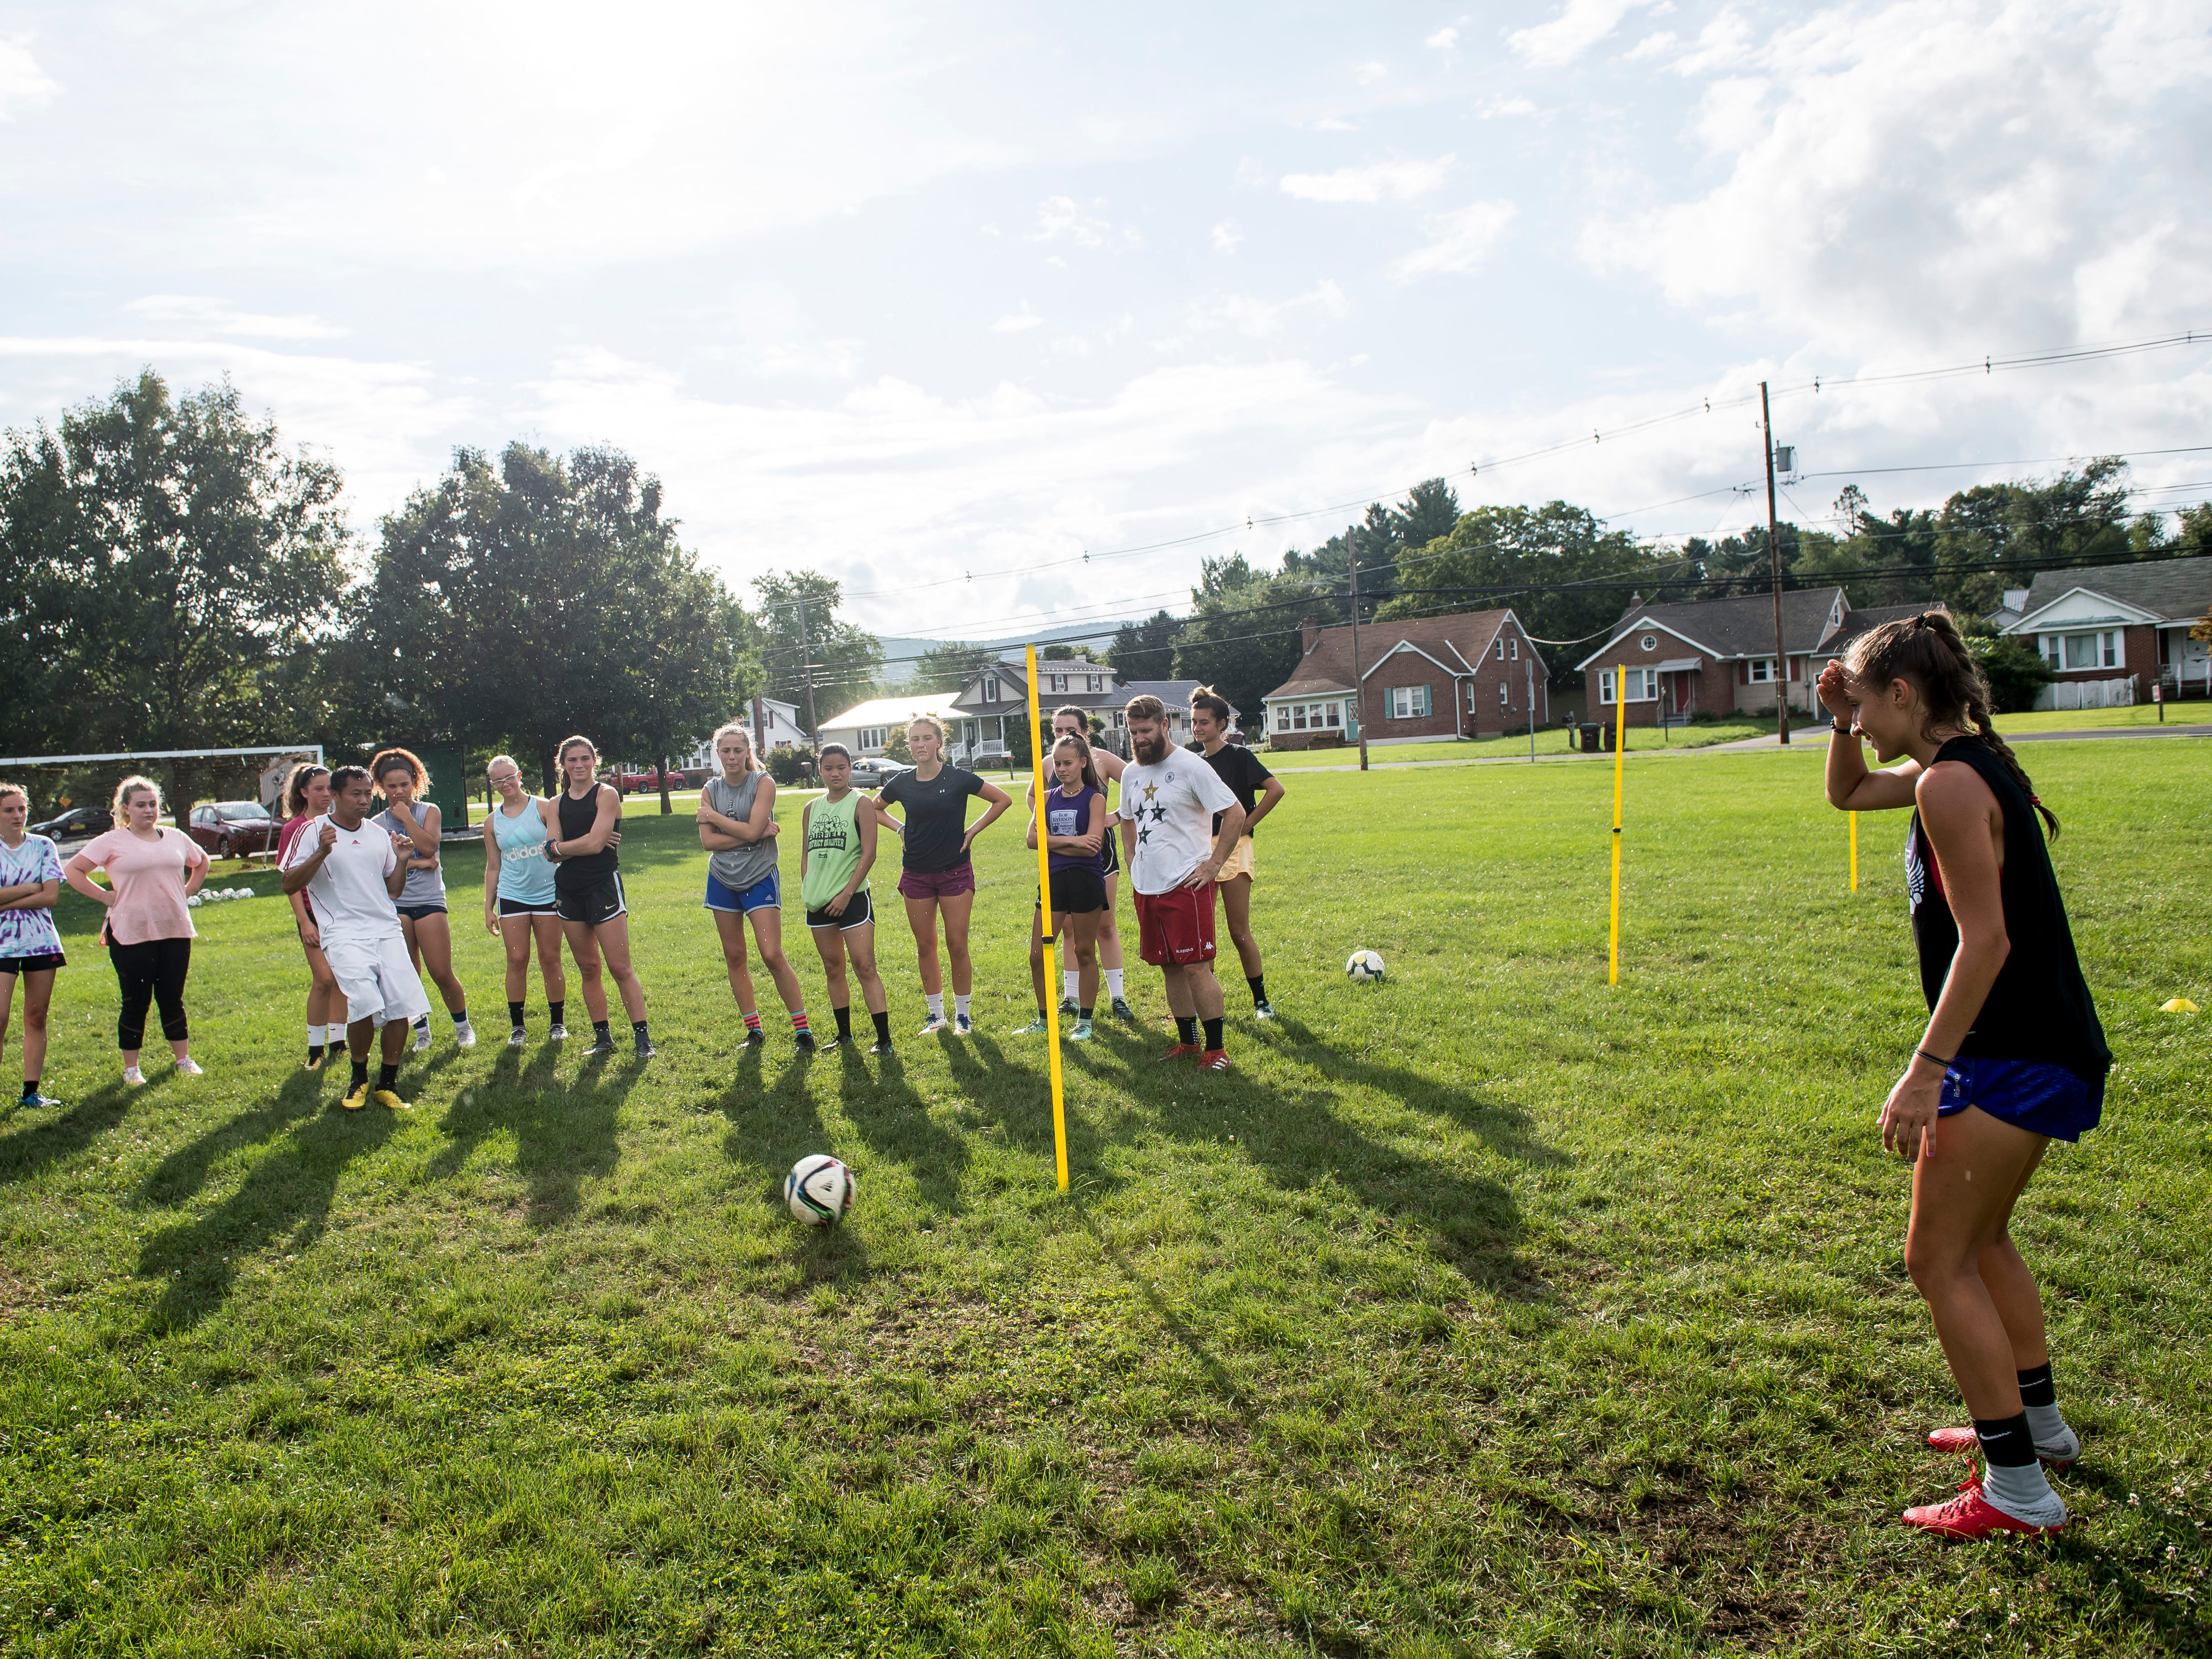 Fairfield girls soccer head coach Phomma Phanhthy, left, kicks the ball to Rio Strosnider while demonstrating a drill during the first day of fall sports practice on Monday, August 13, 2018.